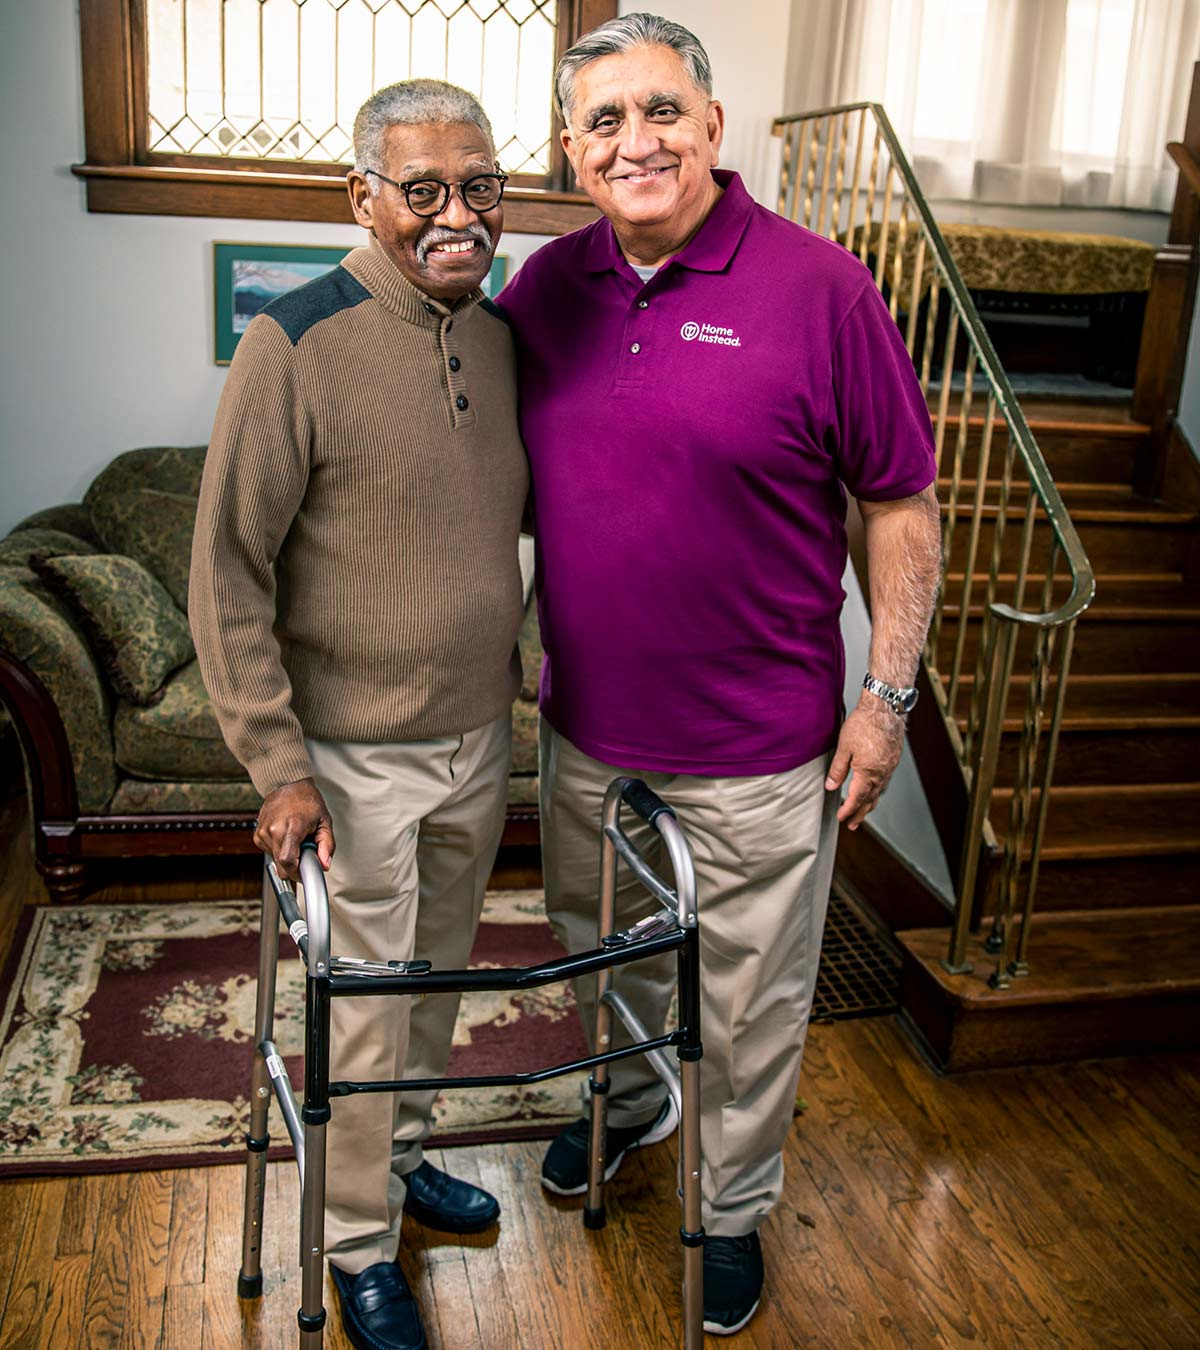 Home Instead CAREGiver and senior smiling while standing in home